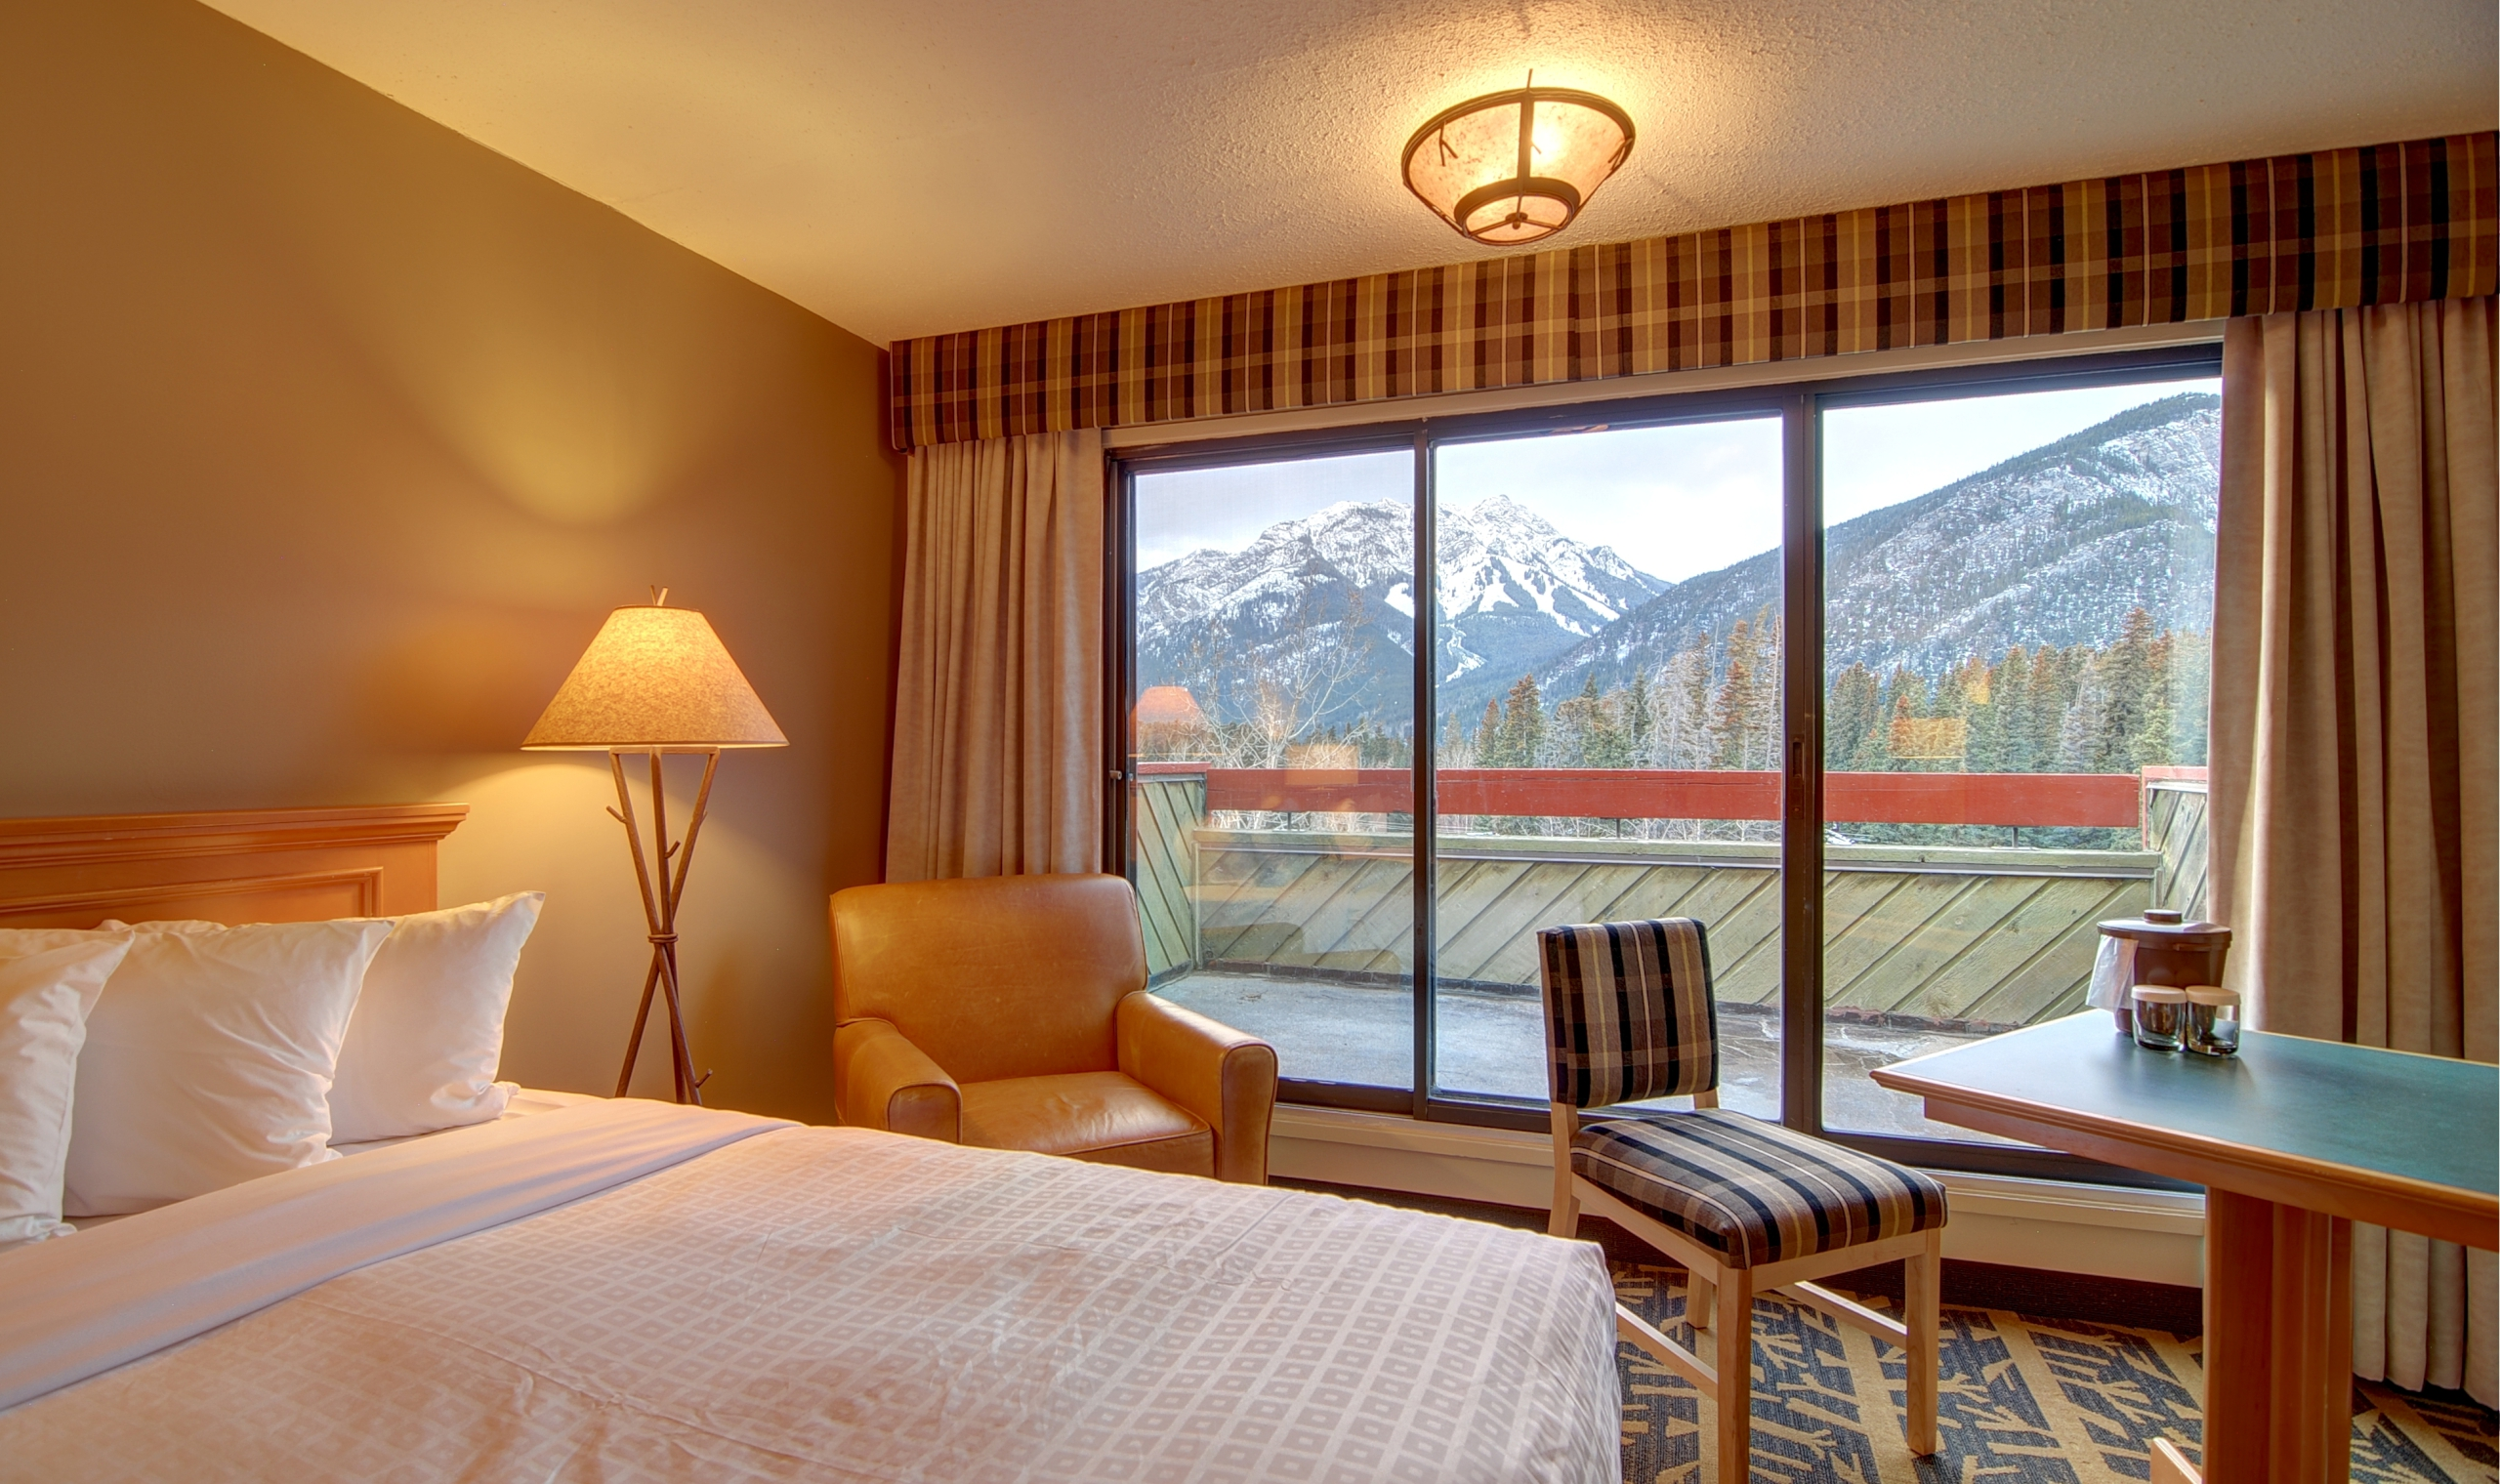 Banff Centre Hotel Rooms